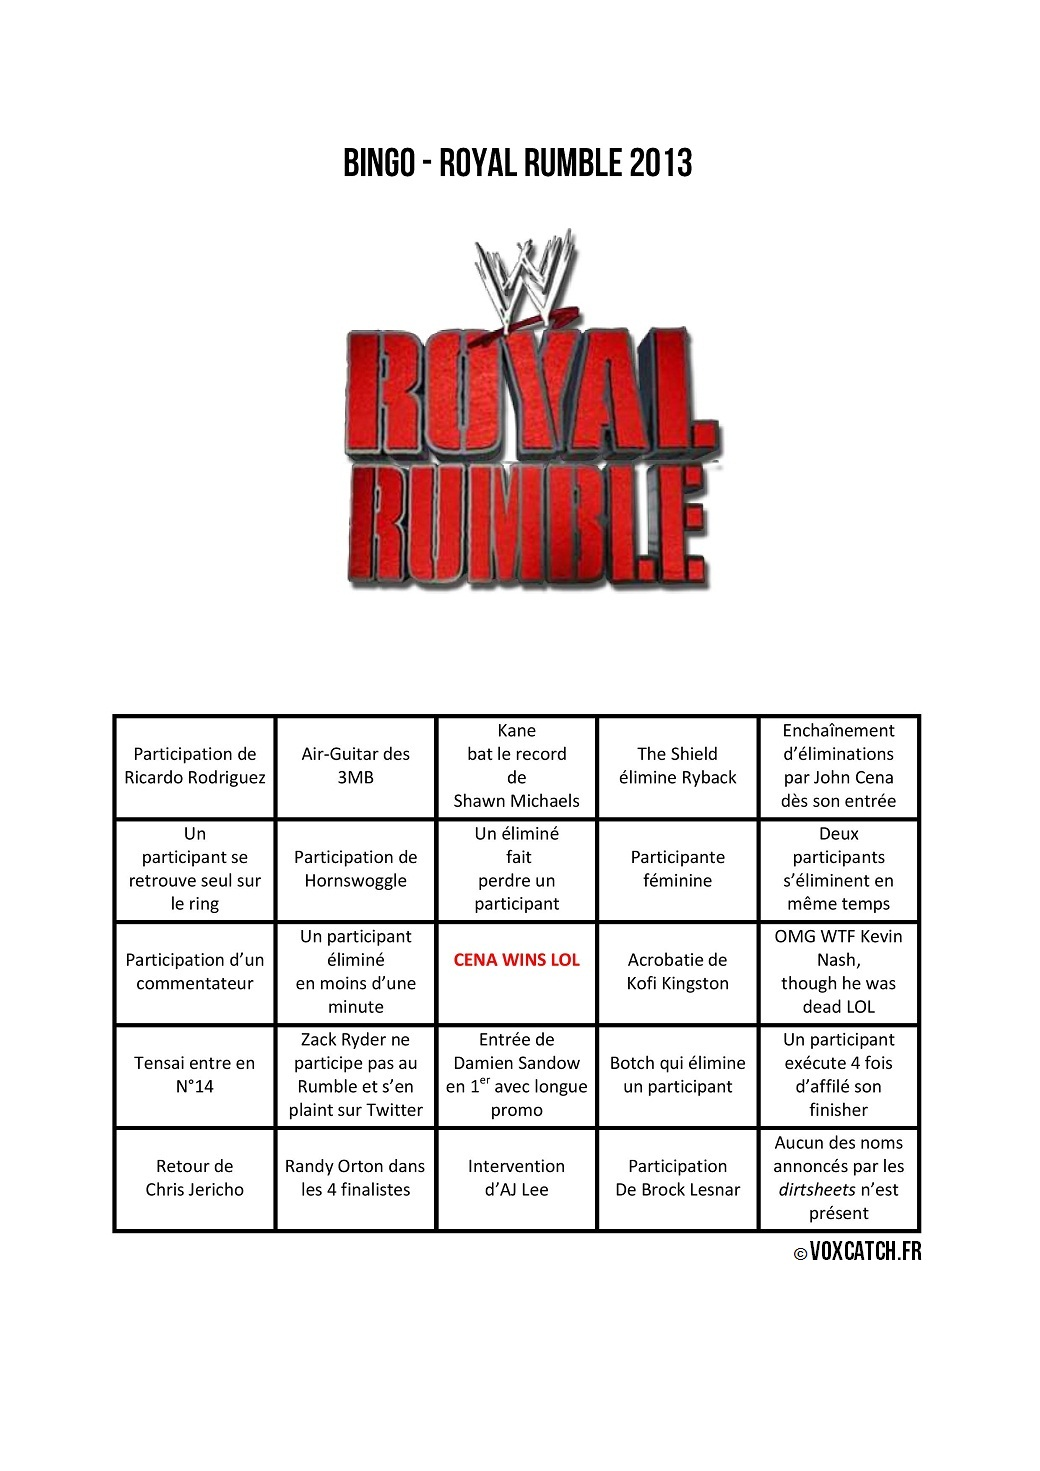 Royal Rumble Bingo VoxCatch